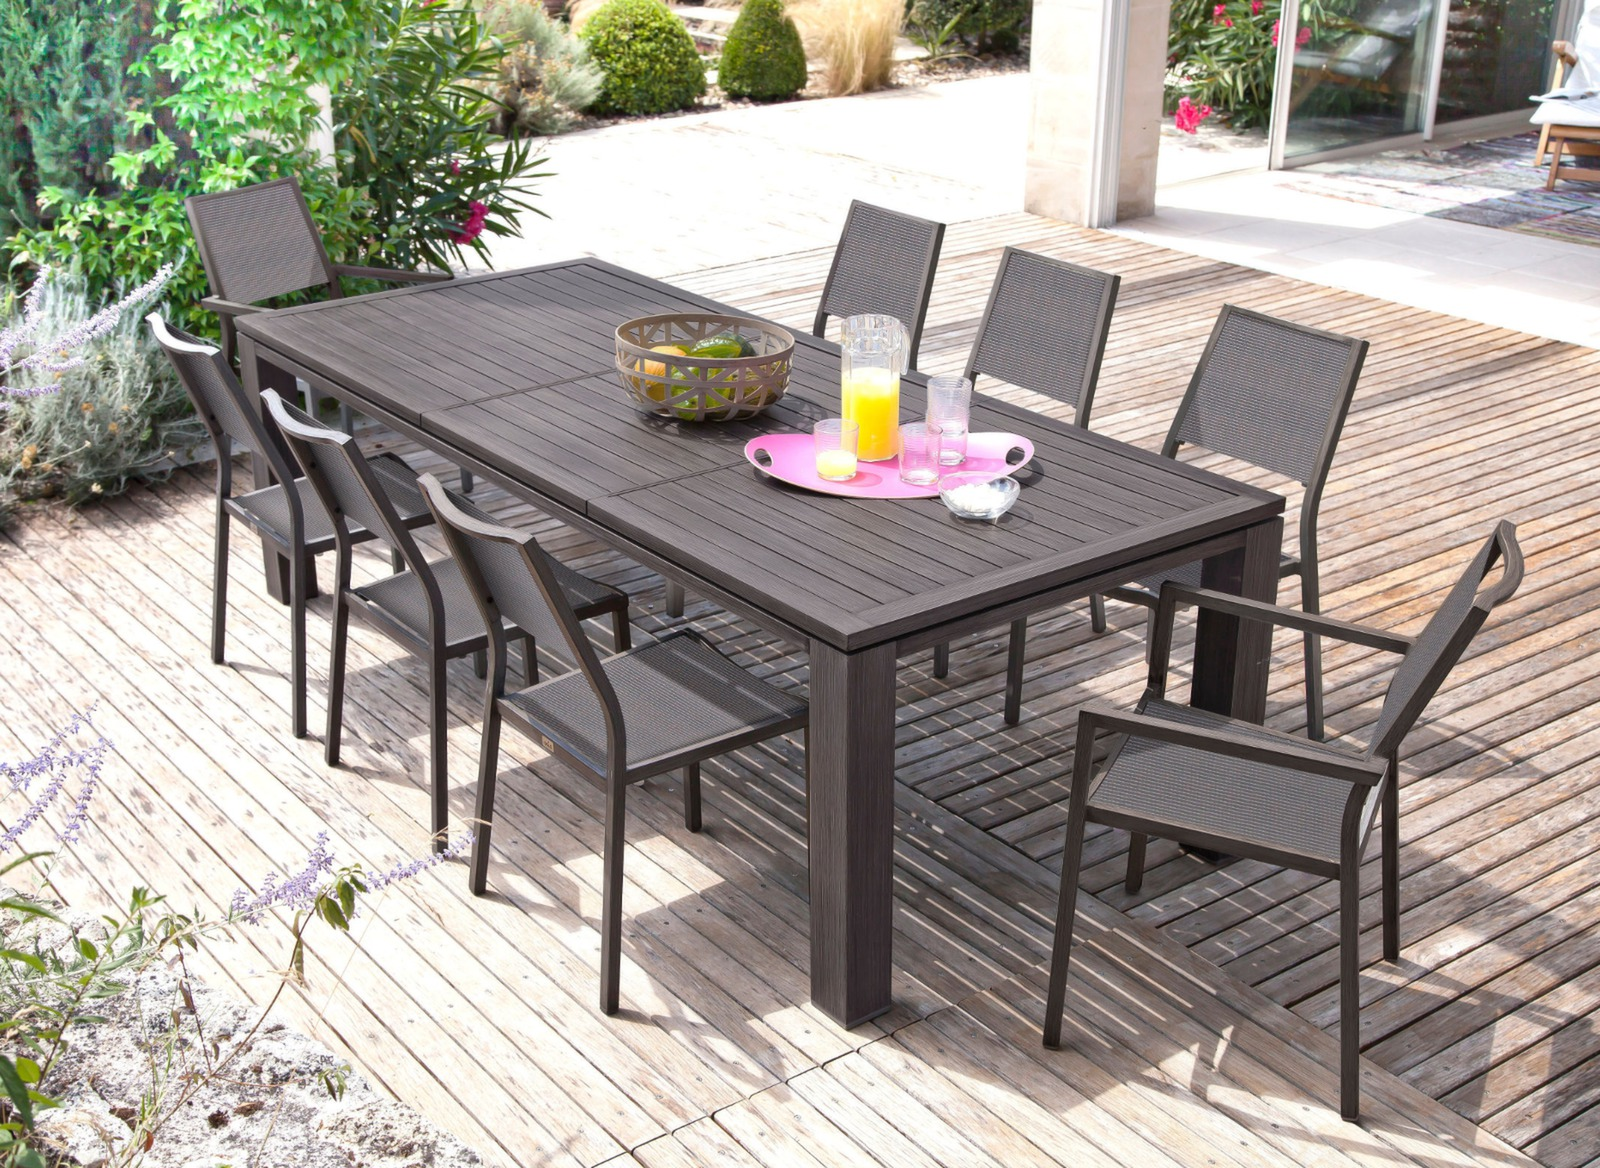 Transat De Salon Grande Table De Jardin Rectangle Fiero - Mobilier Jardin